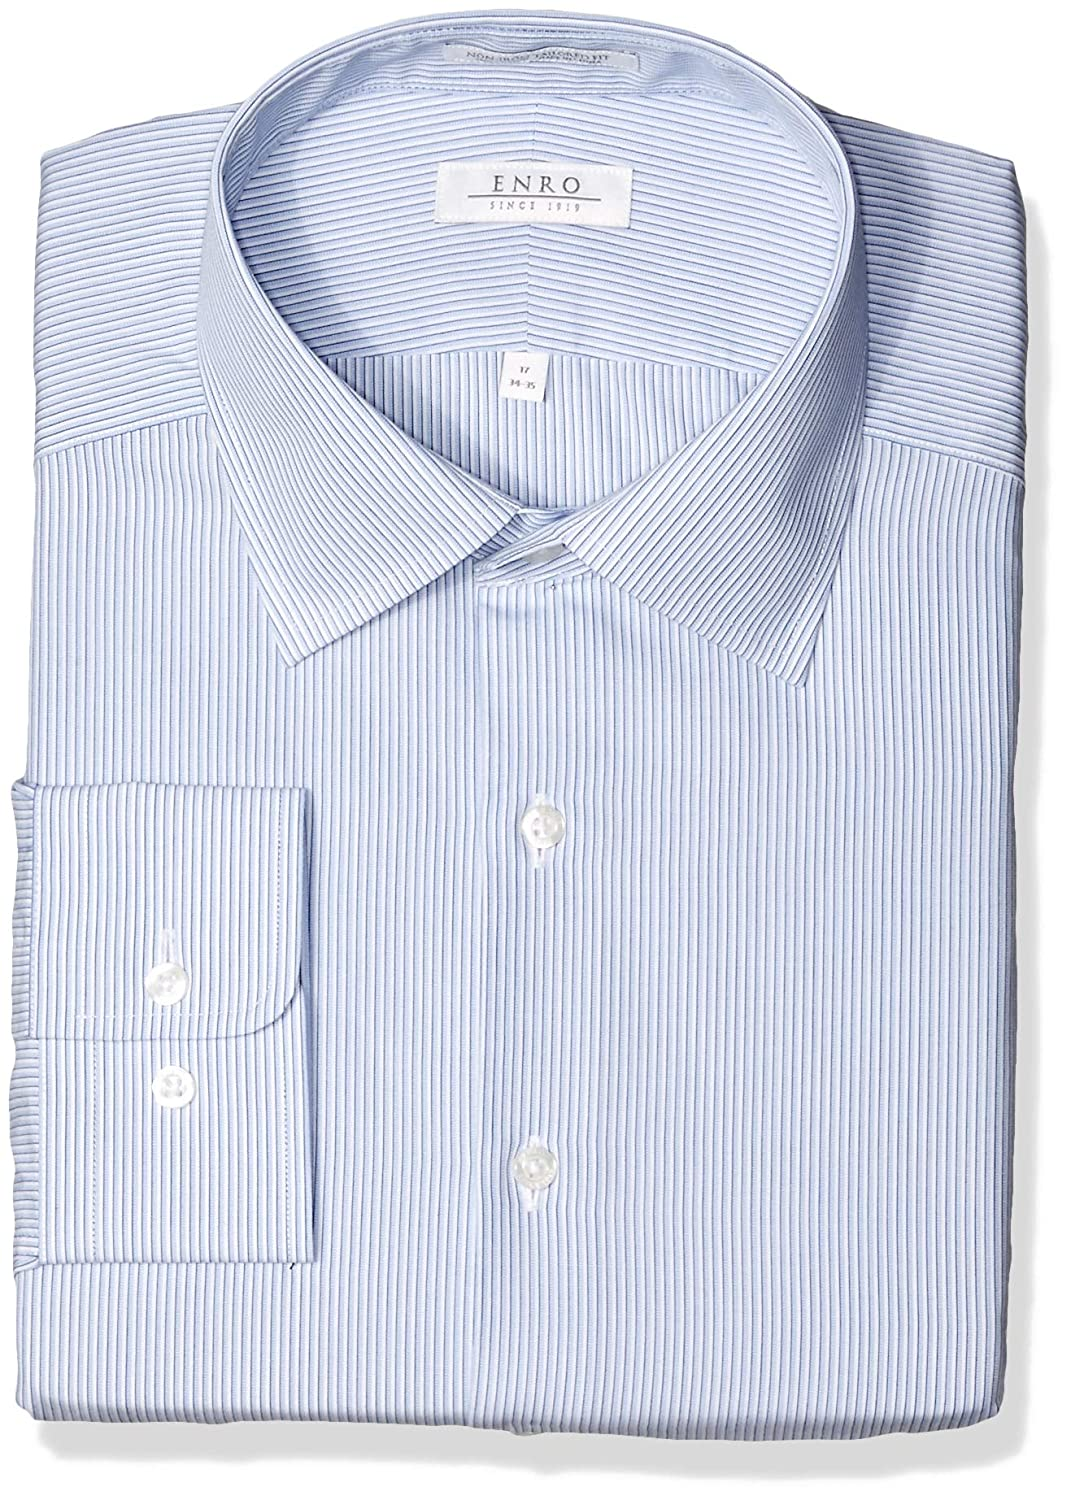 Enro Mens Federal Stripe Non Iron Tailored Fit Dress Shirt At